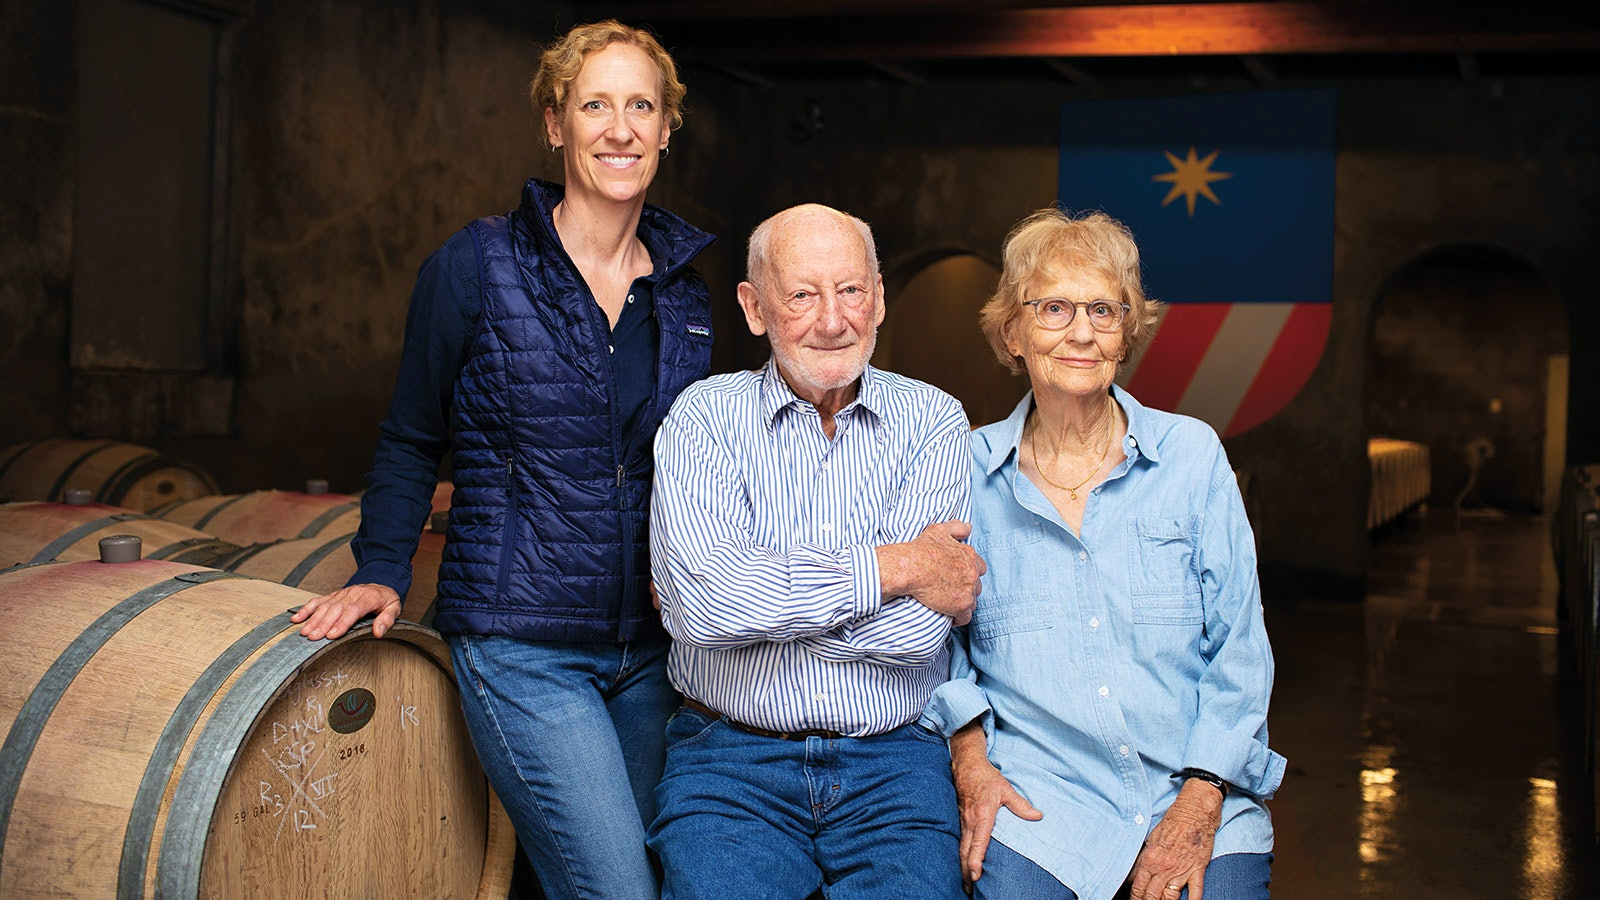 Philip Togni with his daughter Lisa and wife Birgitta